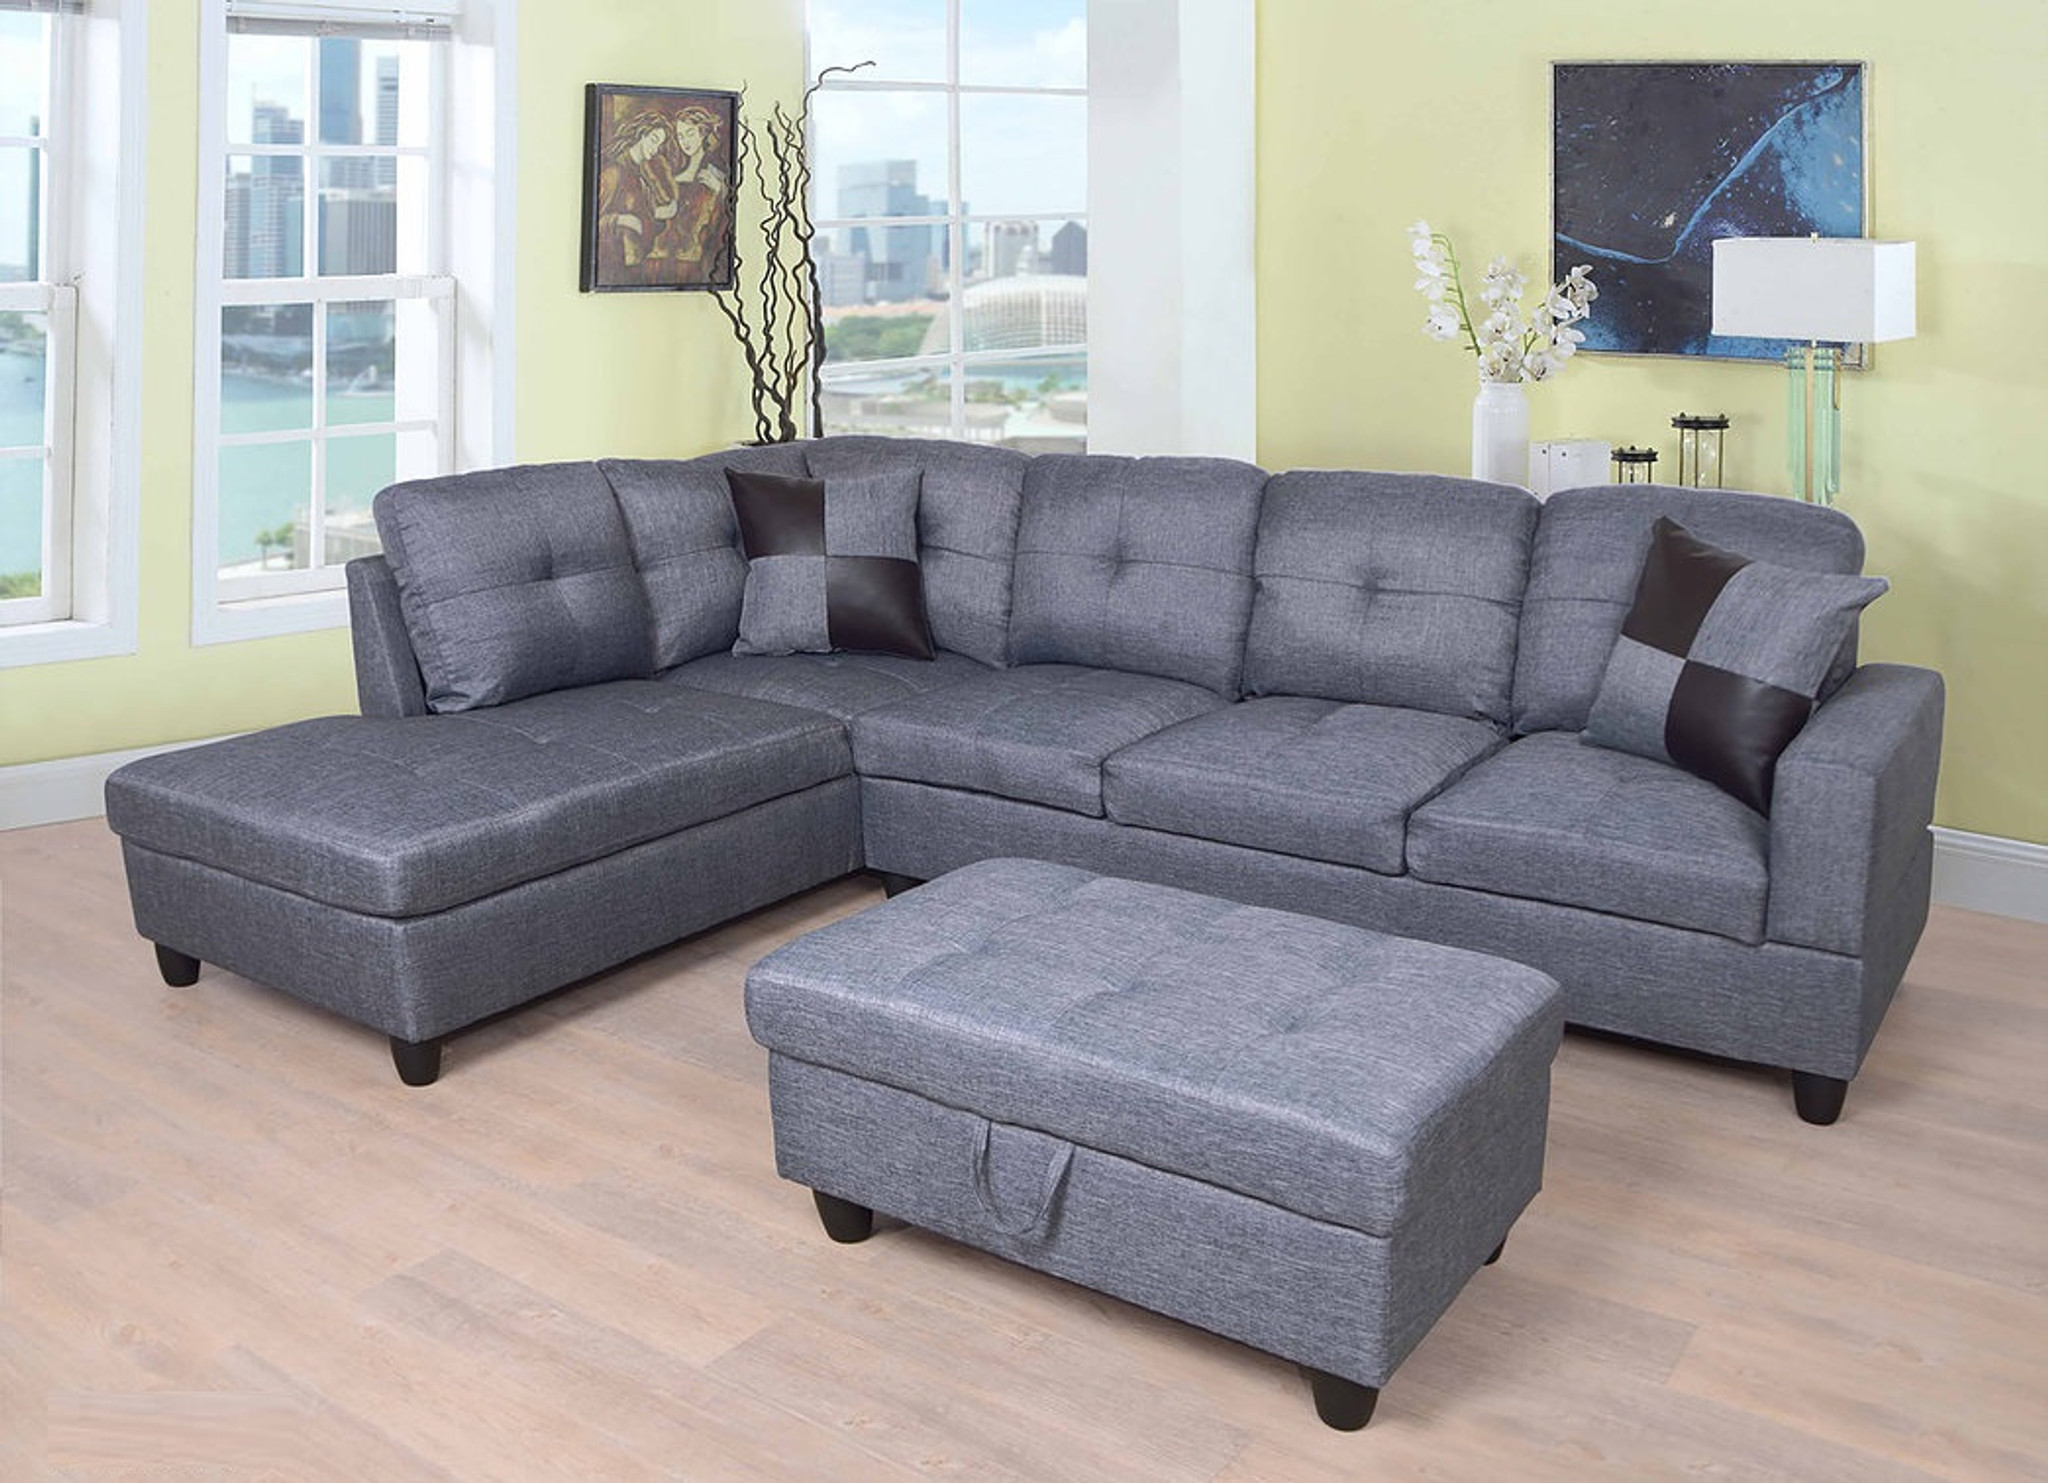 blue gray color 3pcs fabric sectional sofa chaise and storage ottoman